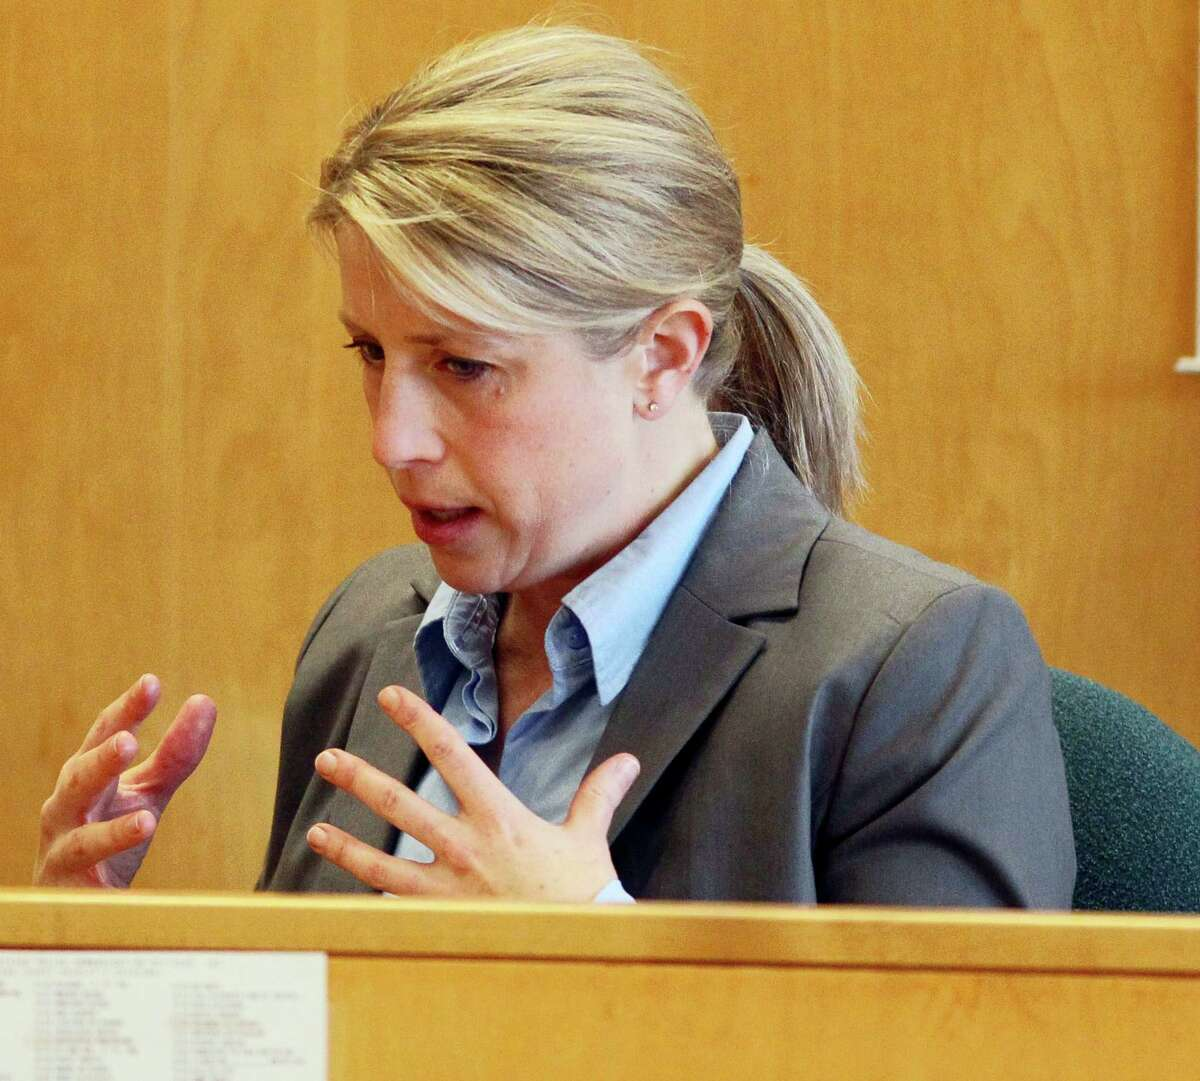 Waukesha Police Detective Michelle Trussoni testifies during a preliminary hearing for two girls accused of stabbing a classmate to please the horror character, Slender Man, Monday, Feb. 16, 2015, at the Waukesha County courthouse in Waukesha, Wis.